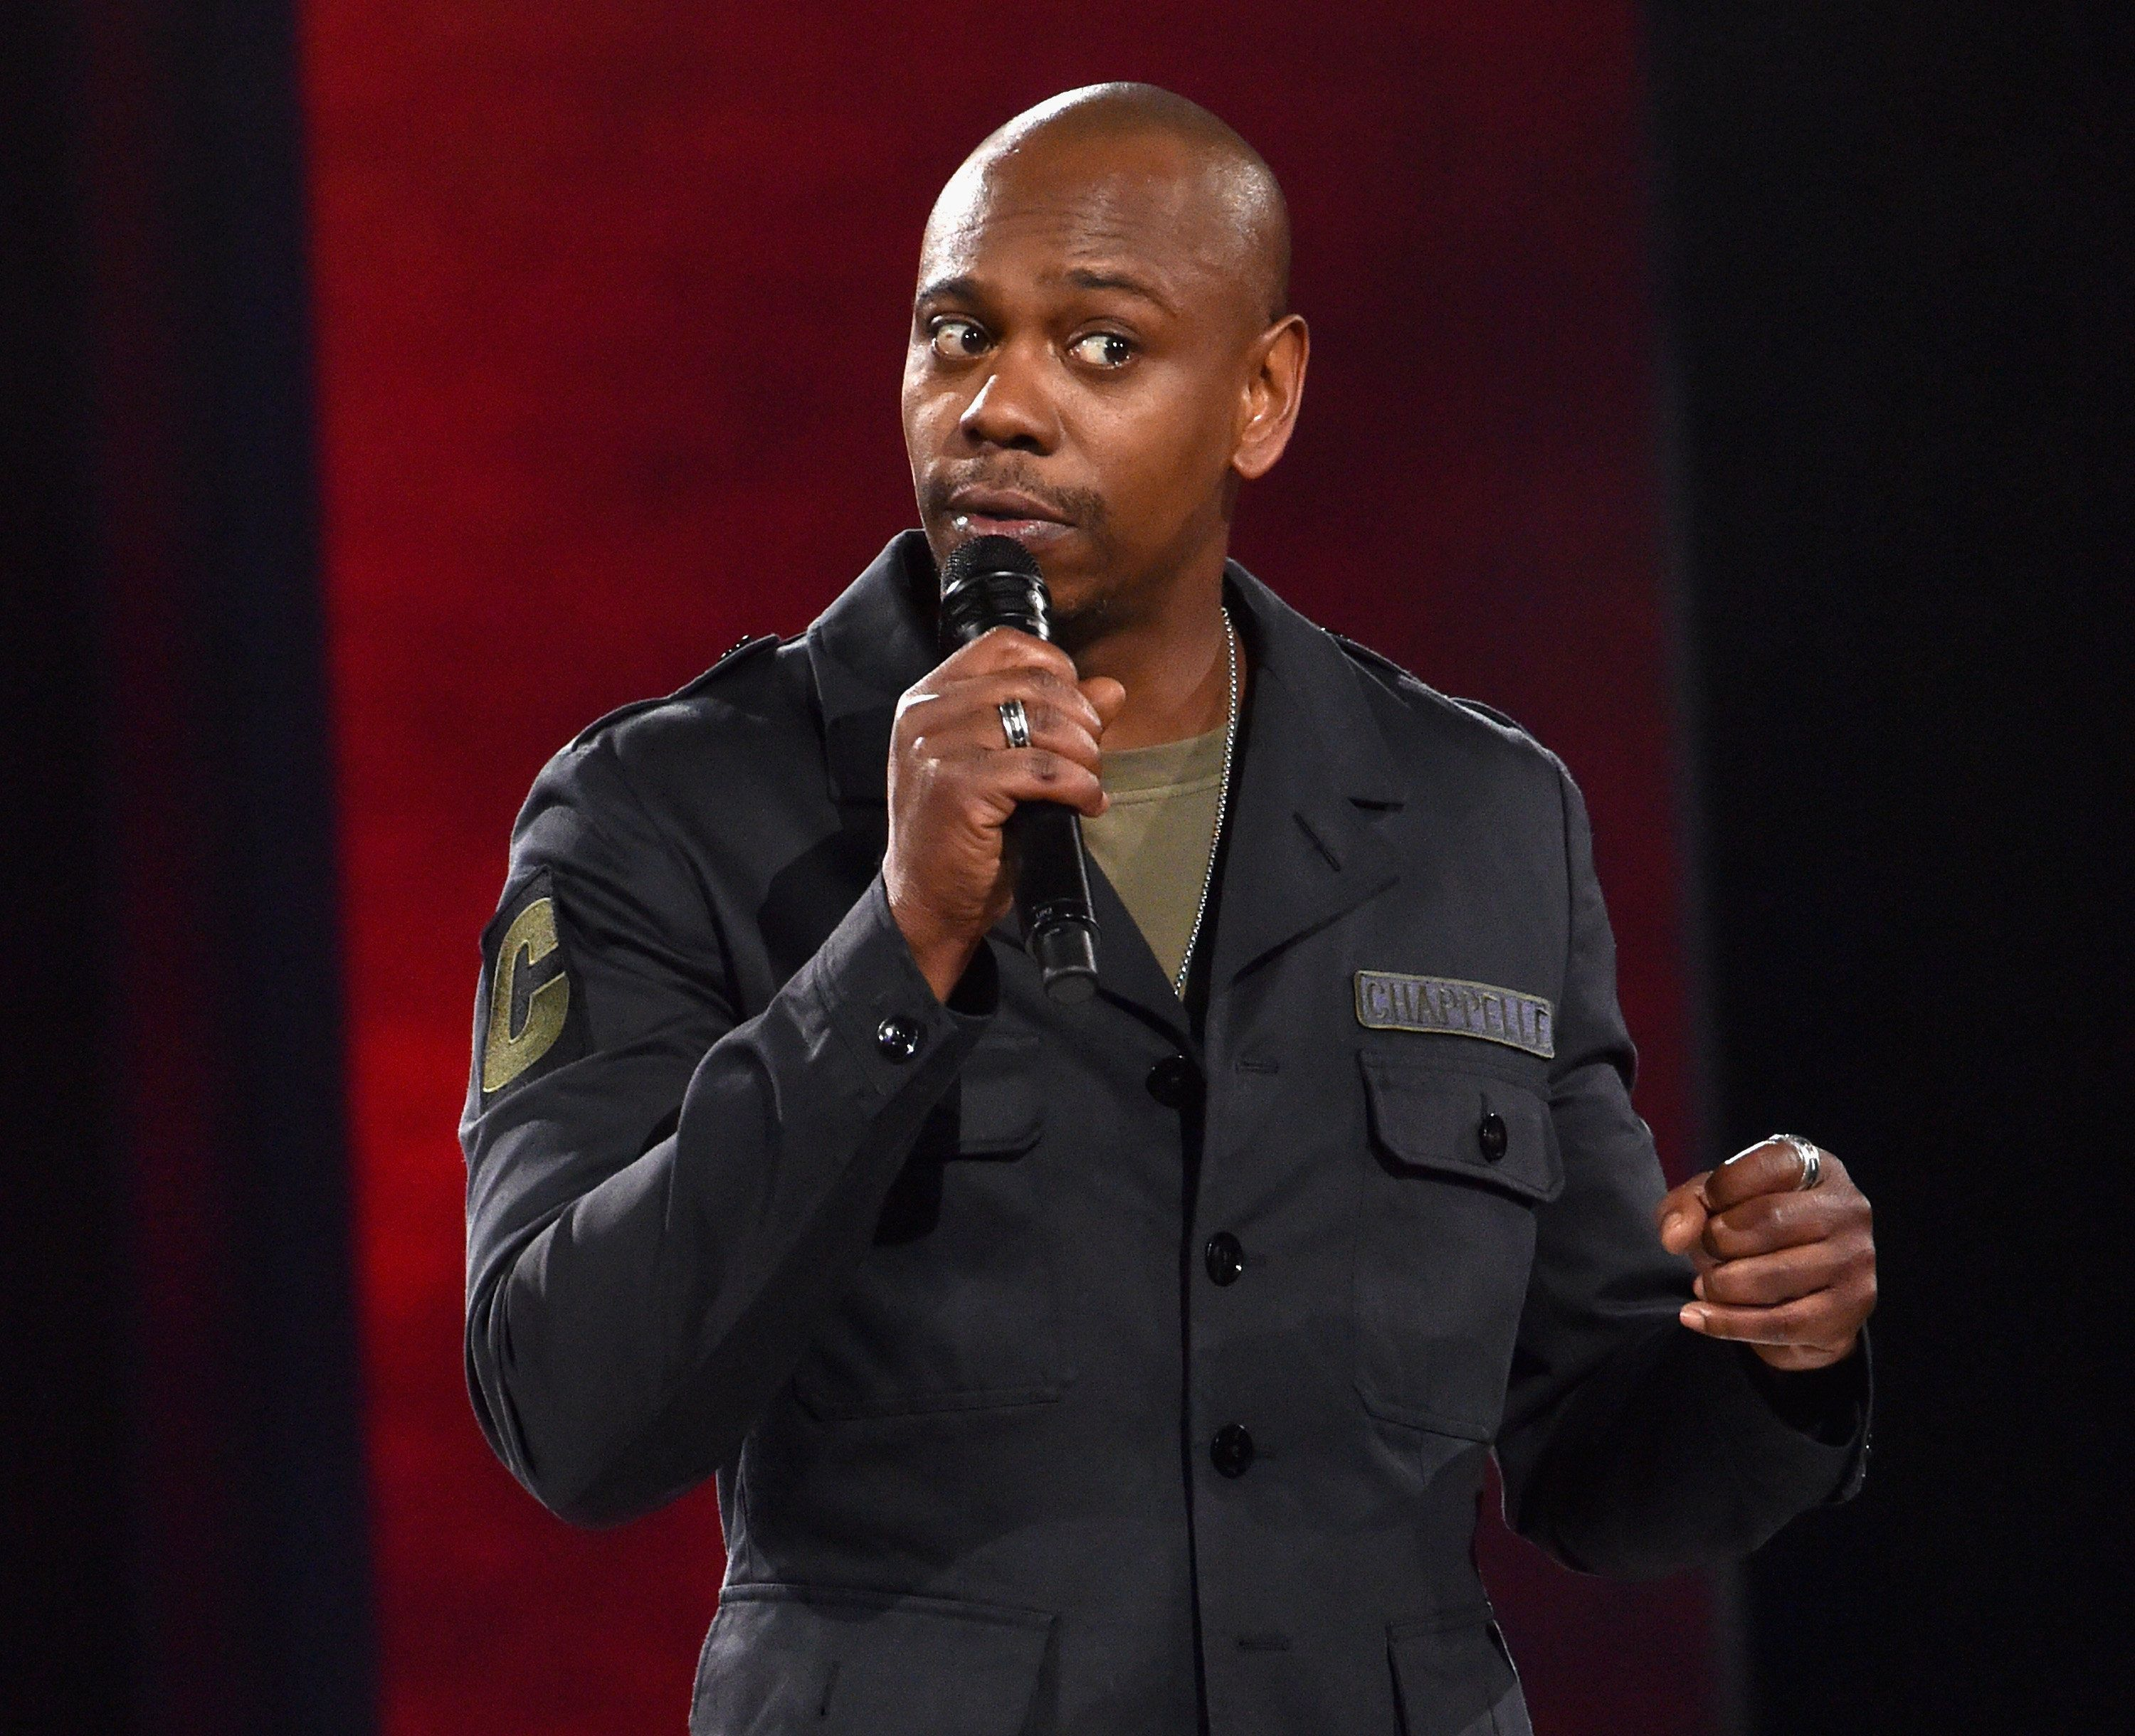 Dave Chappelle performs at a sold-out show in